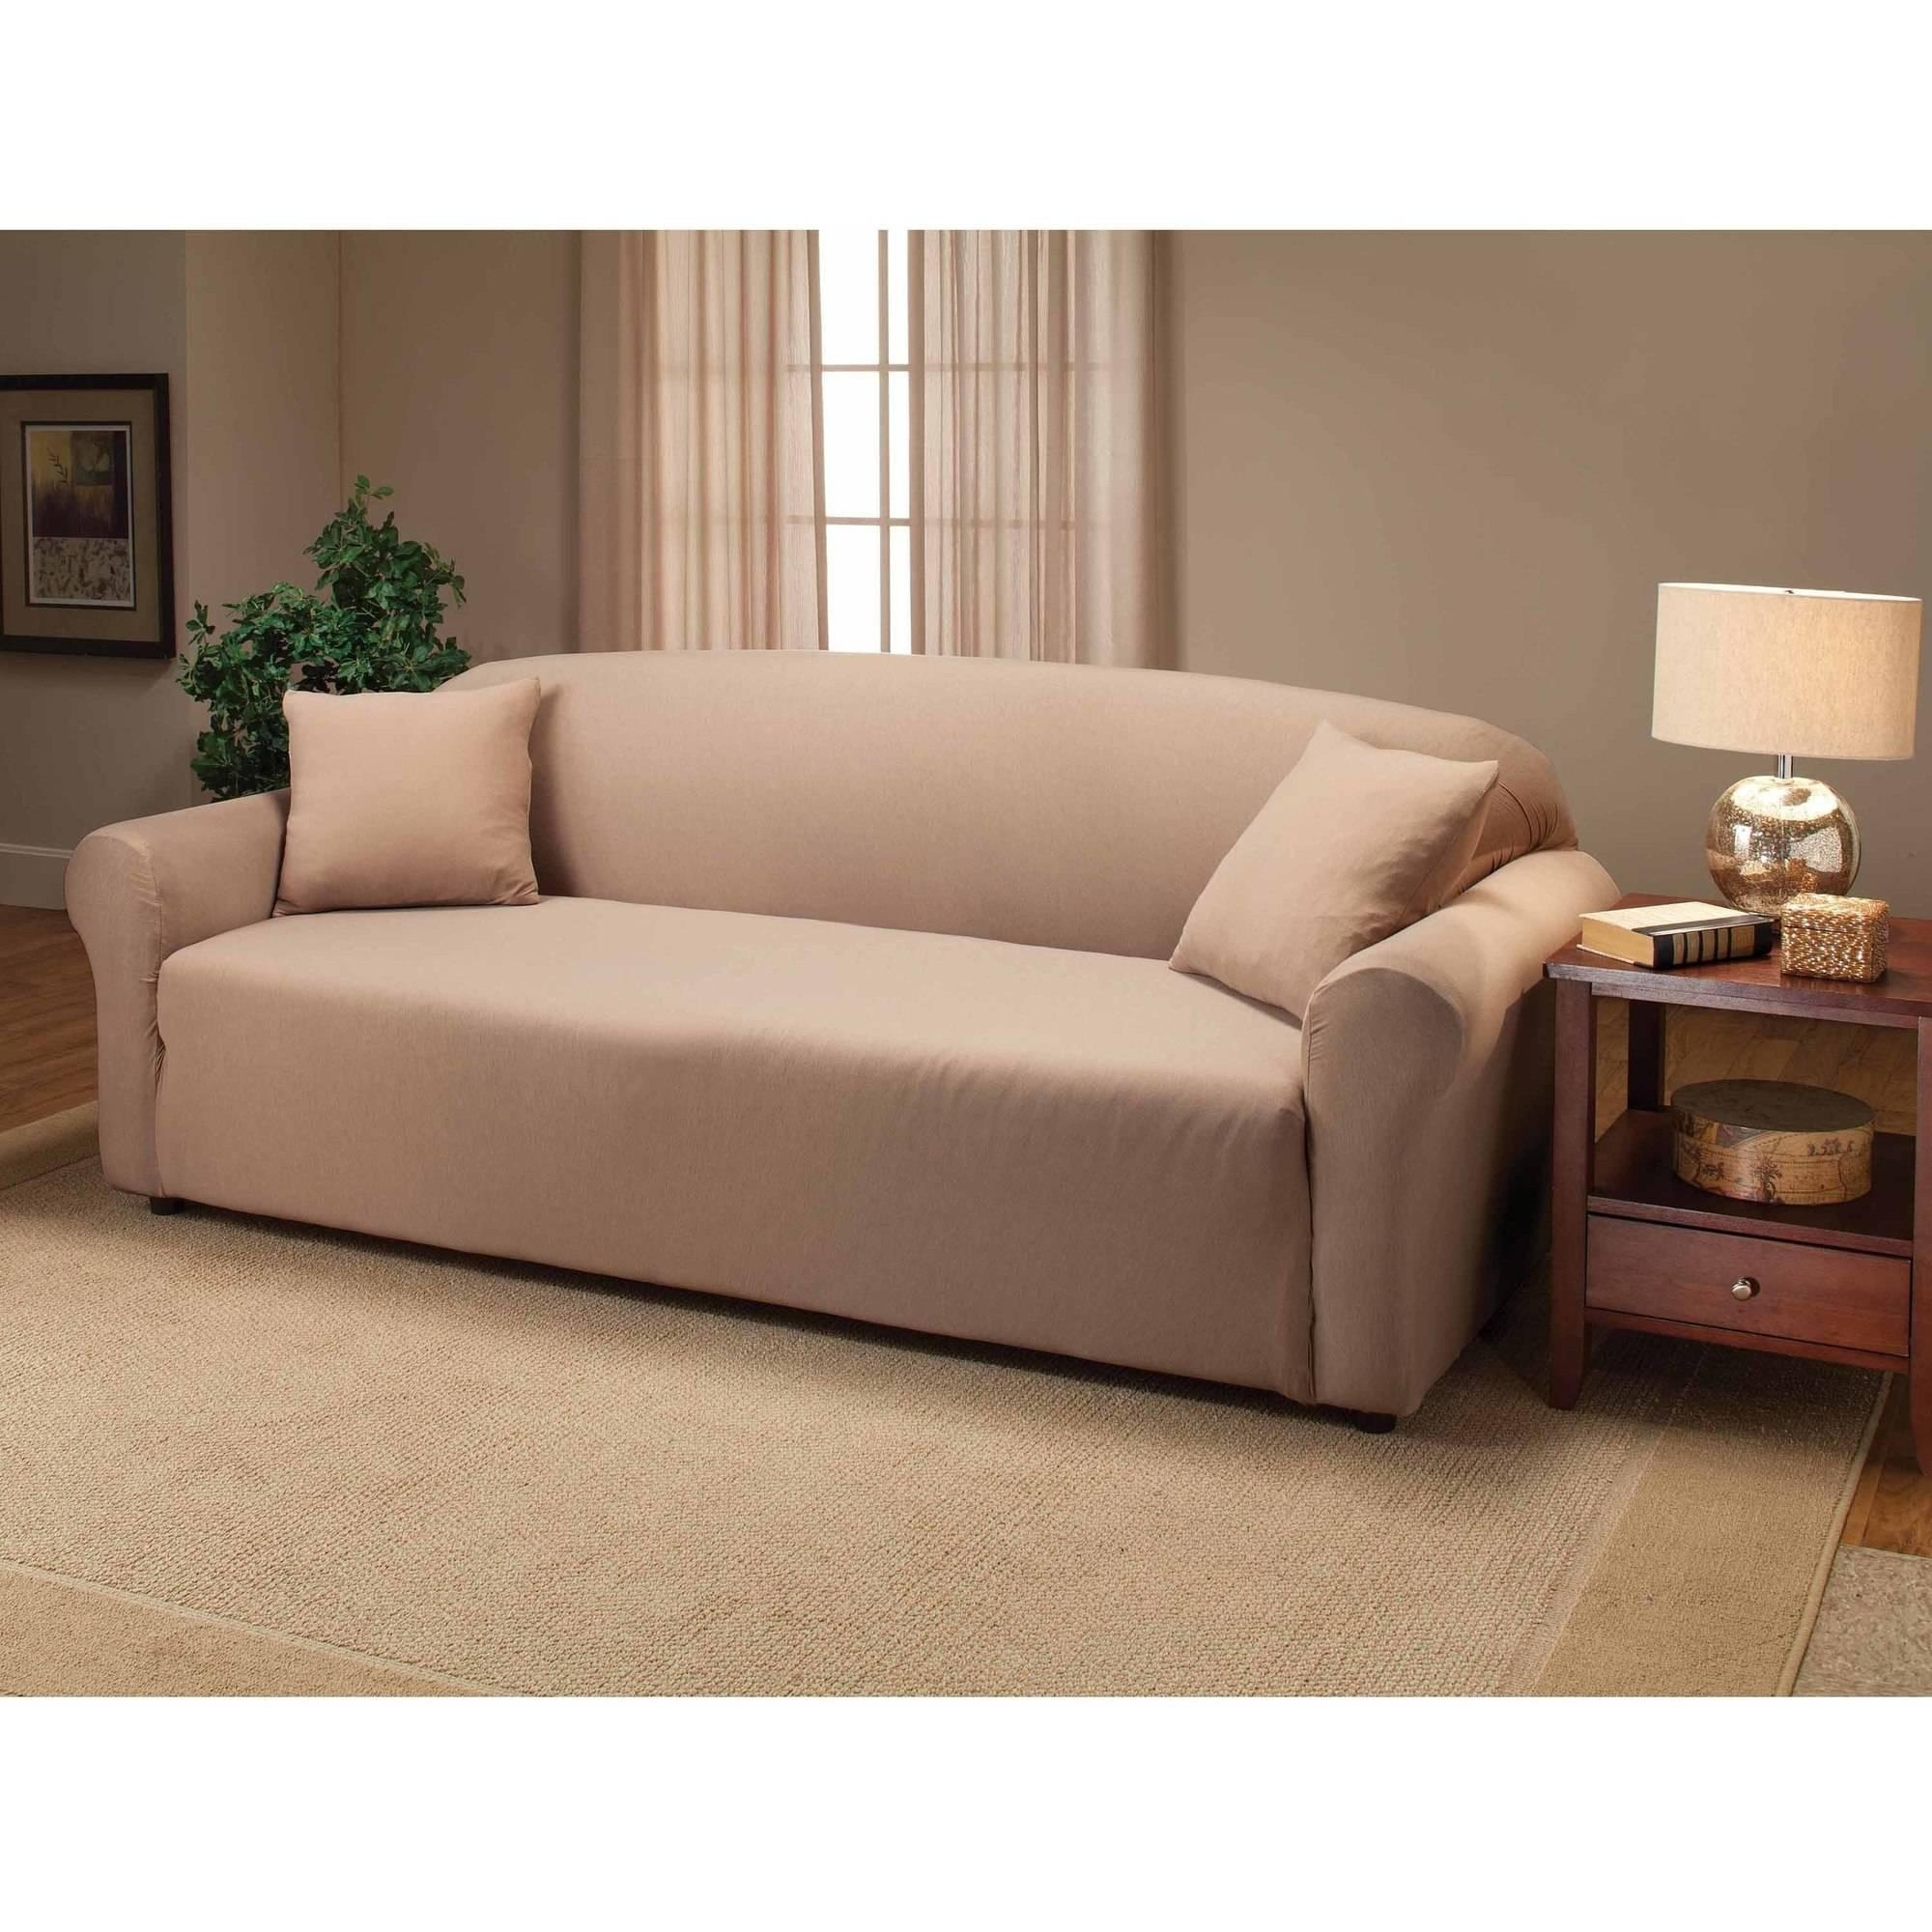 Sofas : Amazing Ready Made Sofa Covers Furniture Covers Sofas With Pertaining To Sofa Settee Covers (Image 12 of 22)